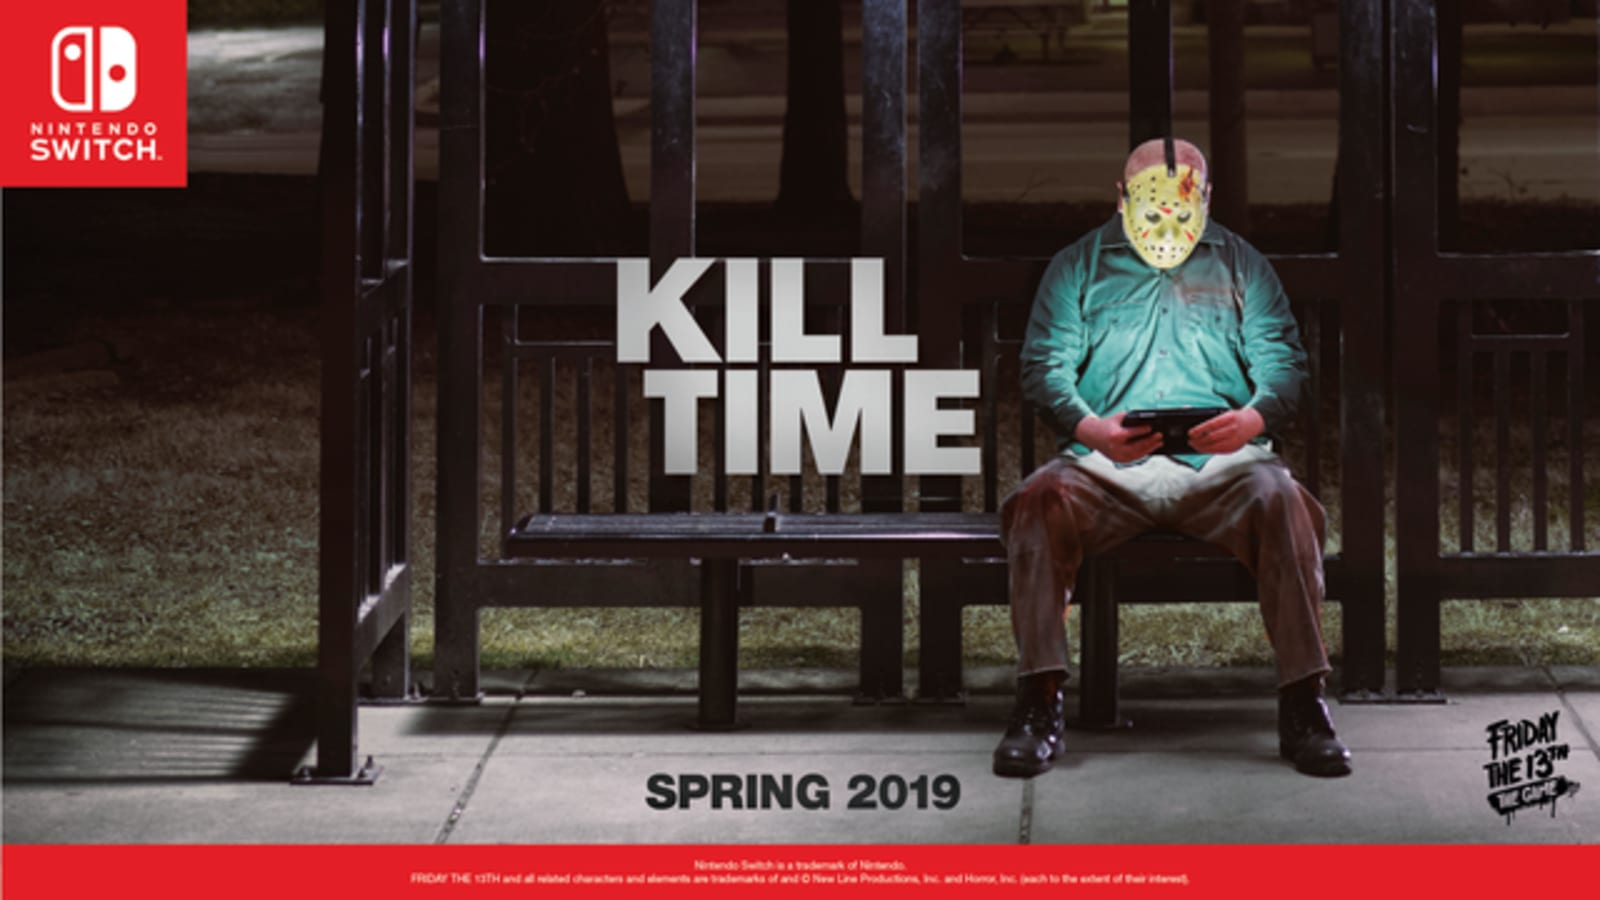 Friday the 13th' is coming to Nintendo Switch this spring